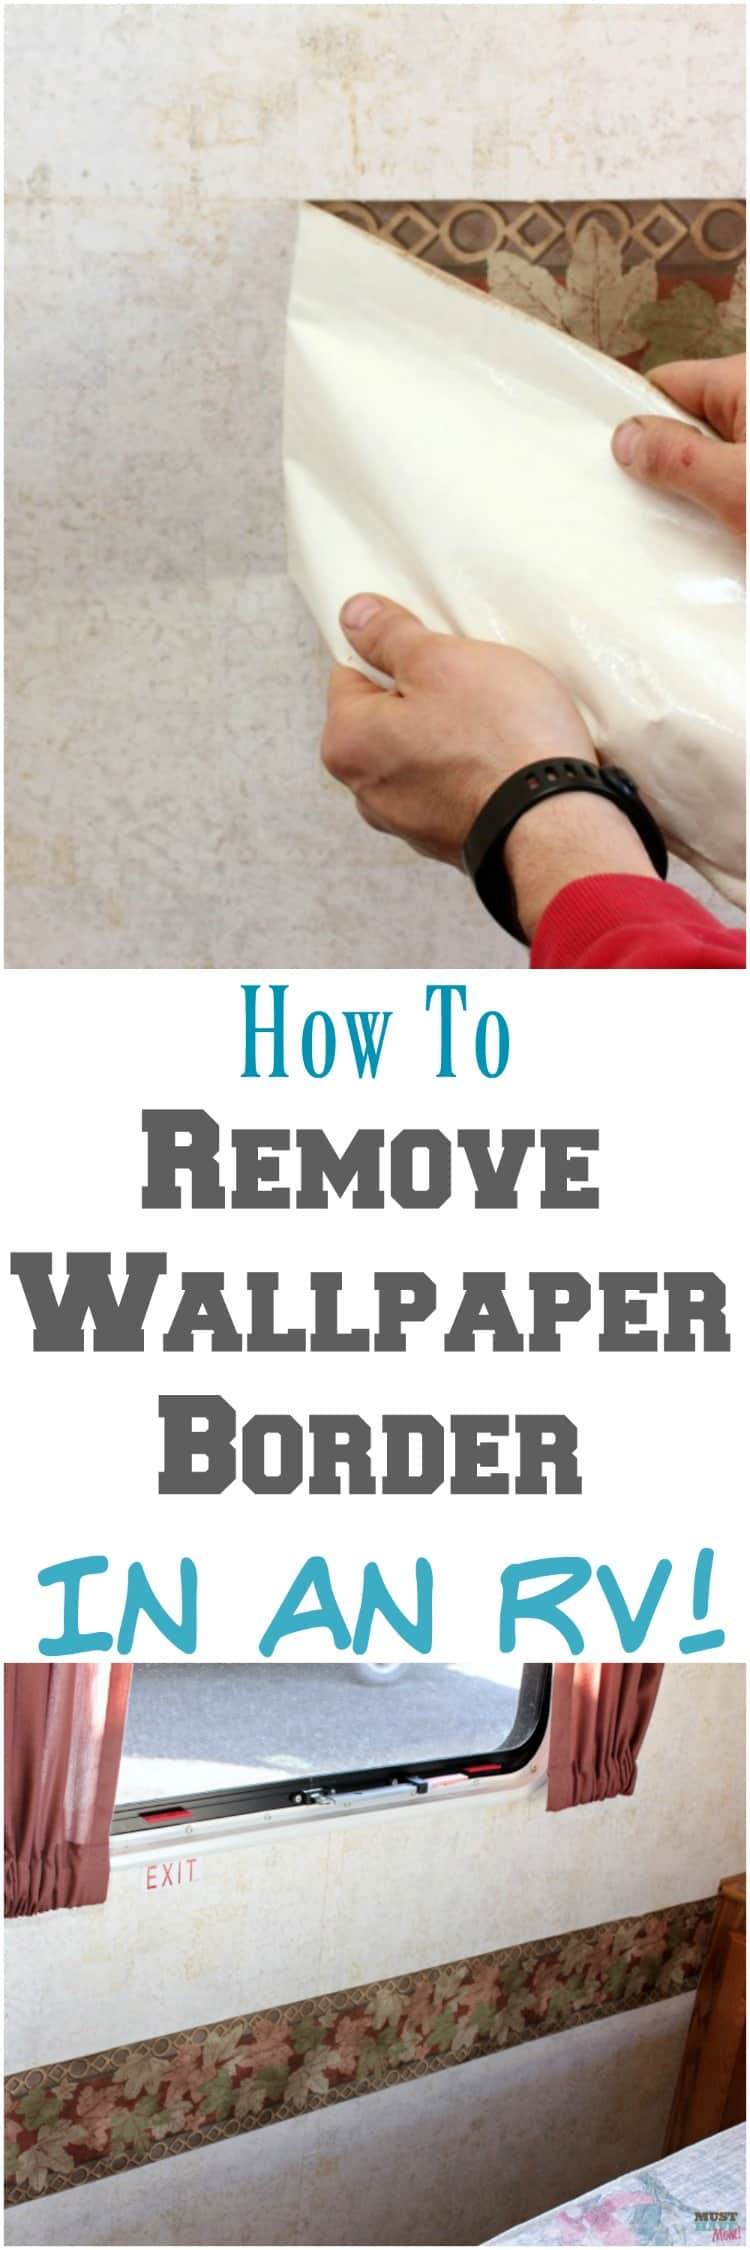 How To Remove Paint From Wrought Iron Patio Furniture: How To Remove Wallpaper Border In An RV